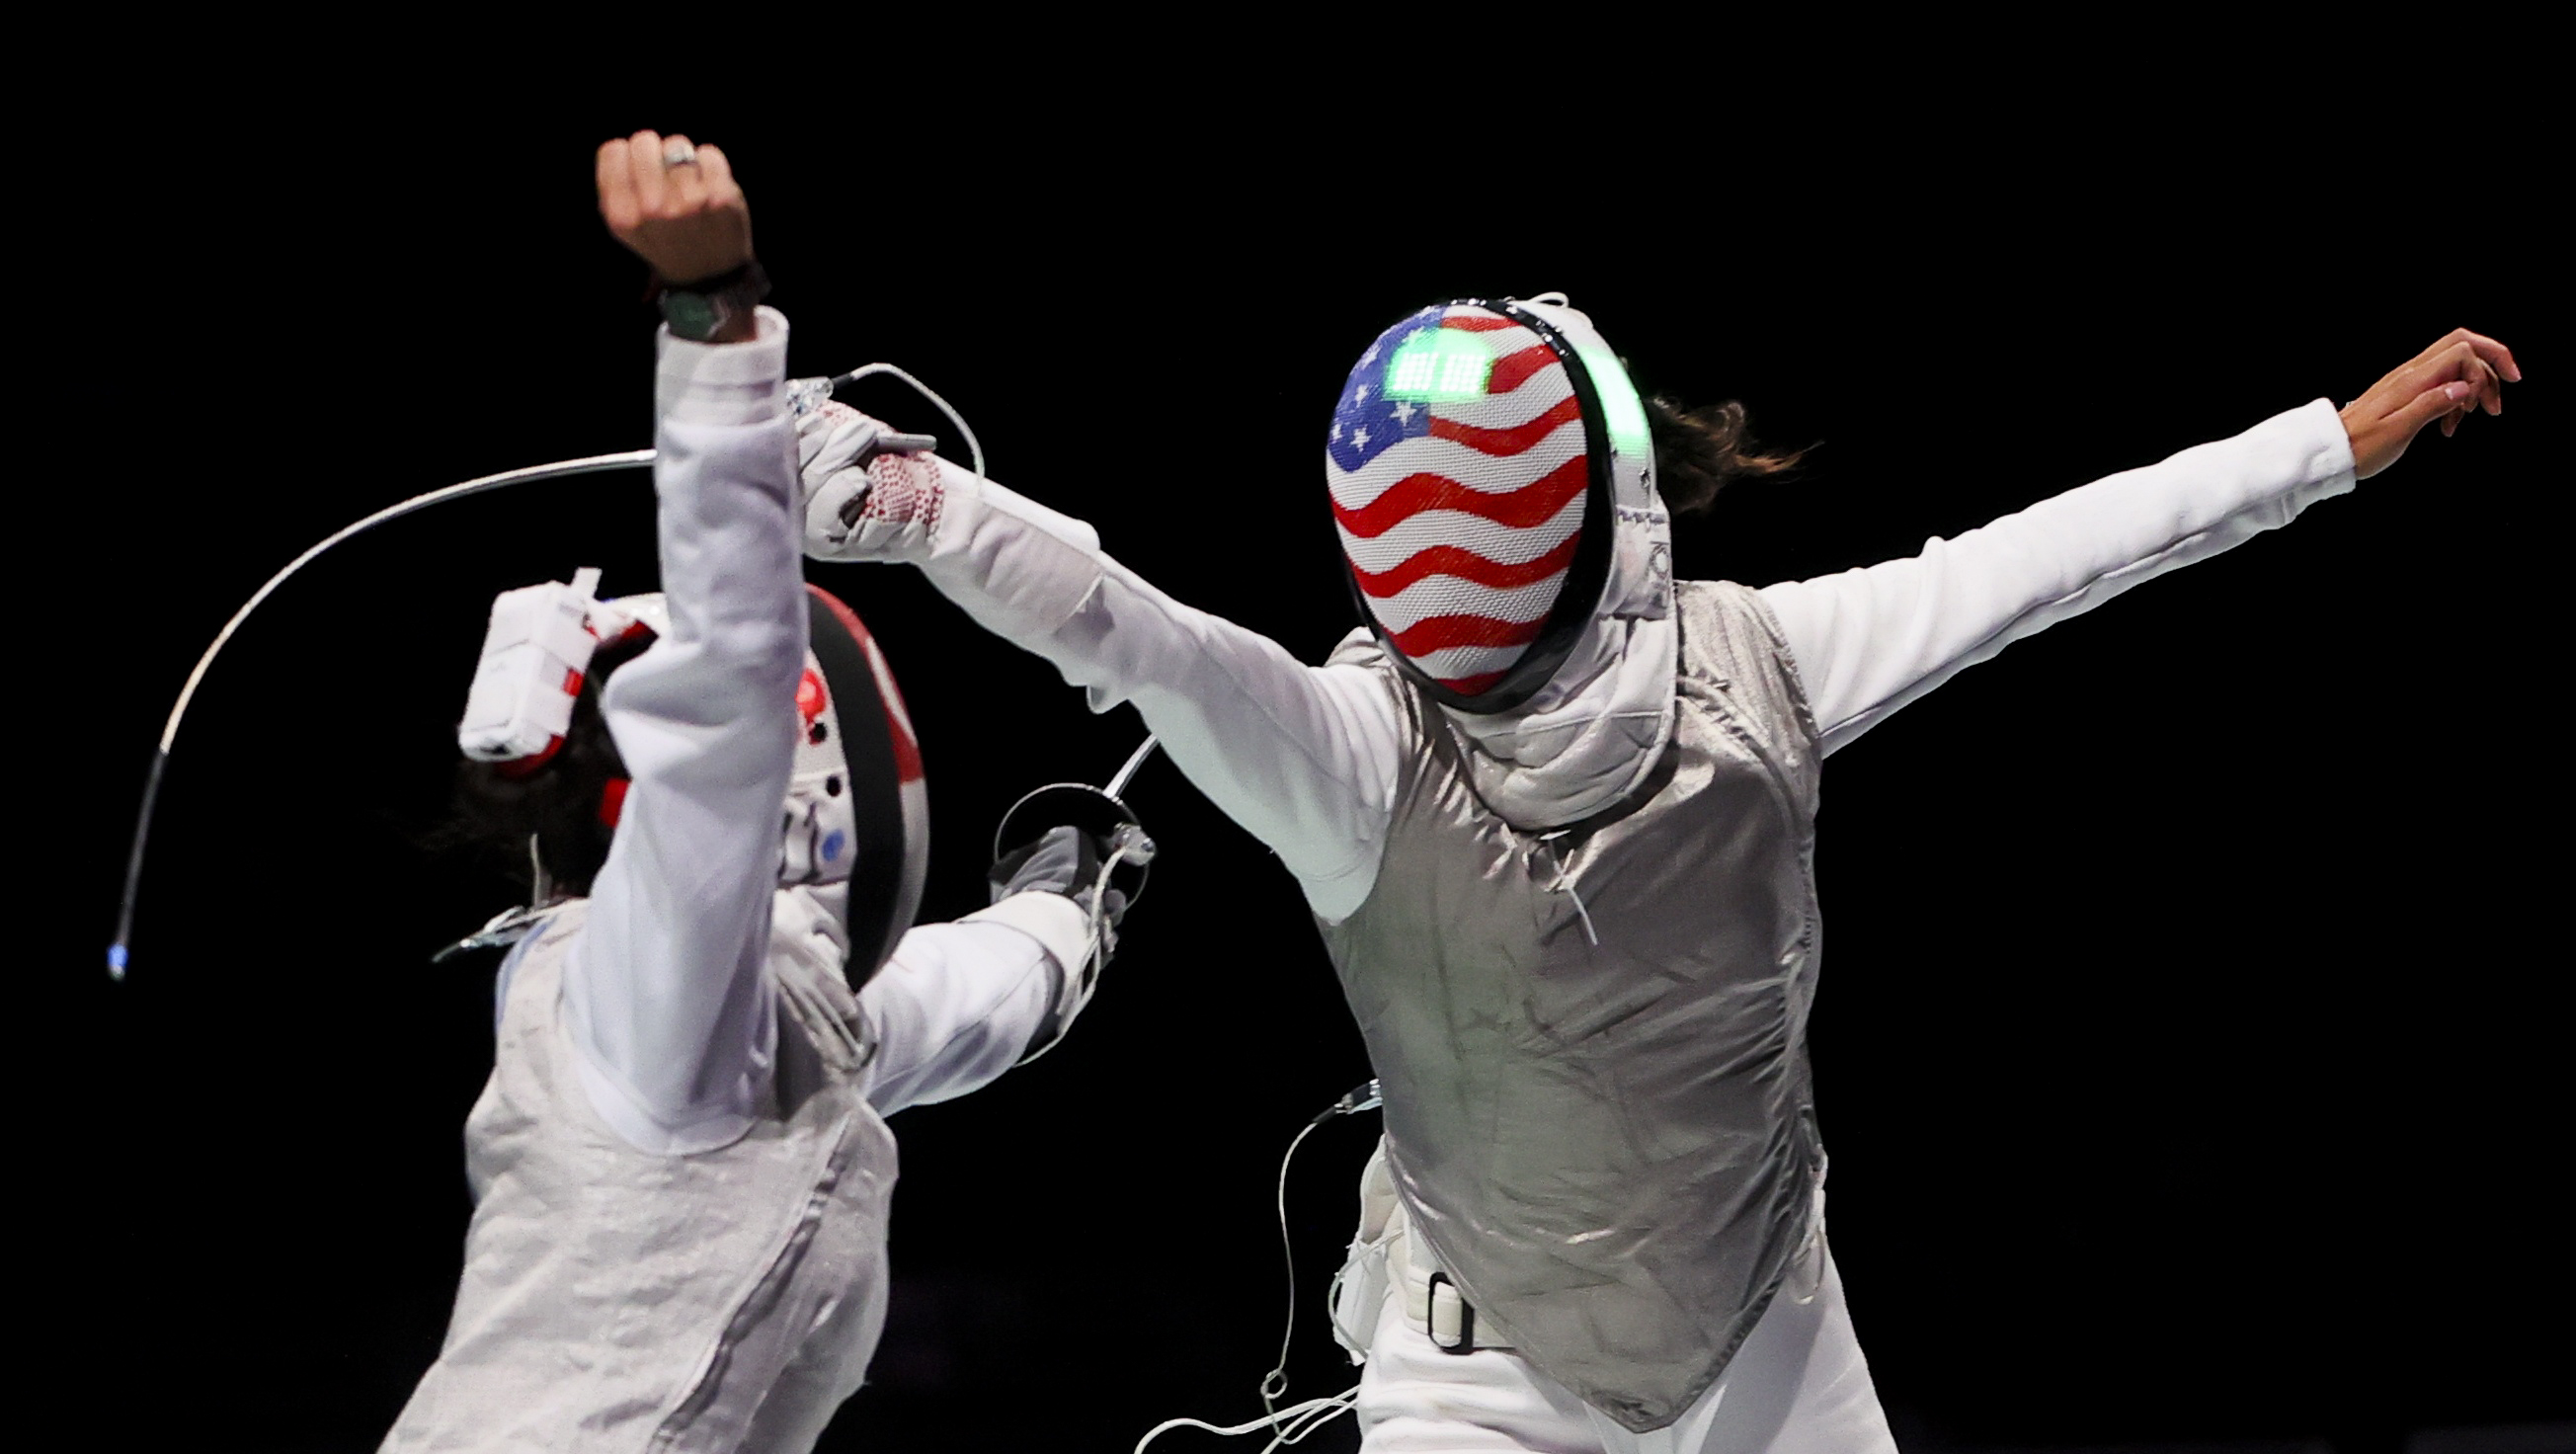 Tokyo 2020 Olympics - Fencing - Women's Individual Foil - Last 32 - Makuhari Messe Hall B - Chiba, Japan - July 25, 2021. Lee Kiefer of the United States in action against Amita Berthier of Singapore REUTERS/Maxim Shemetov